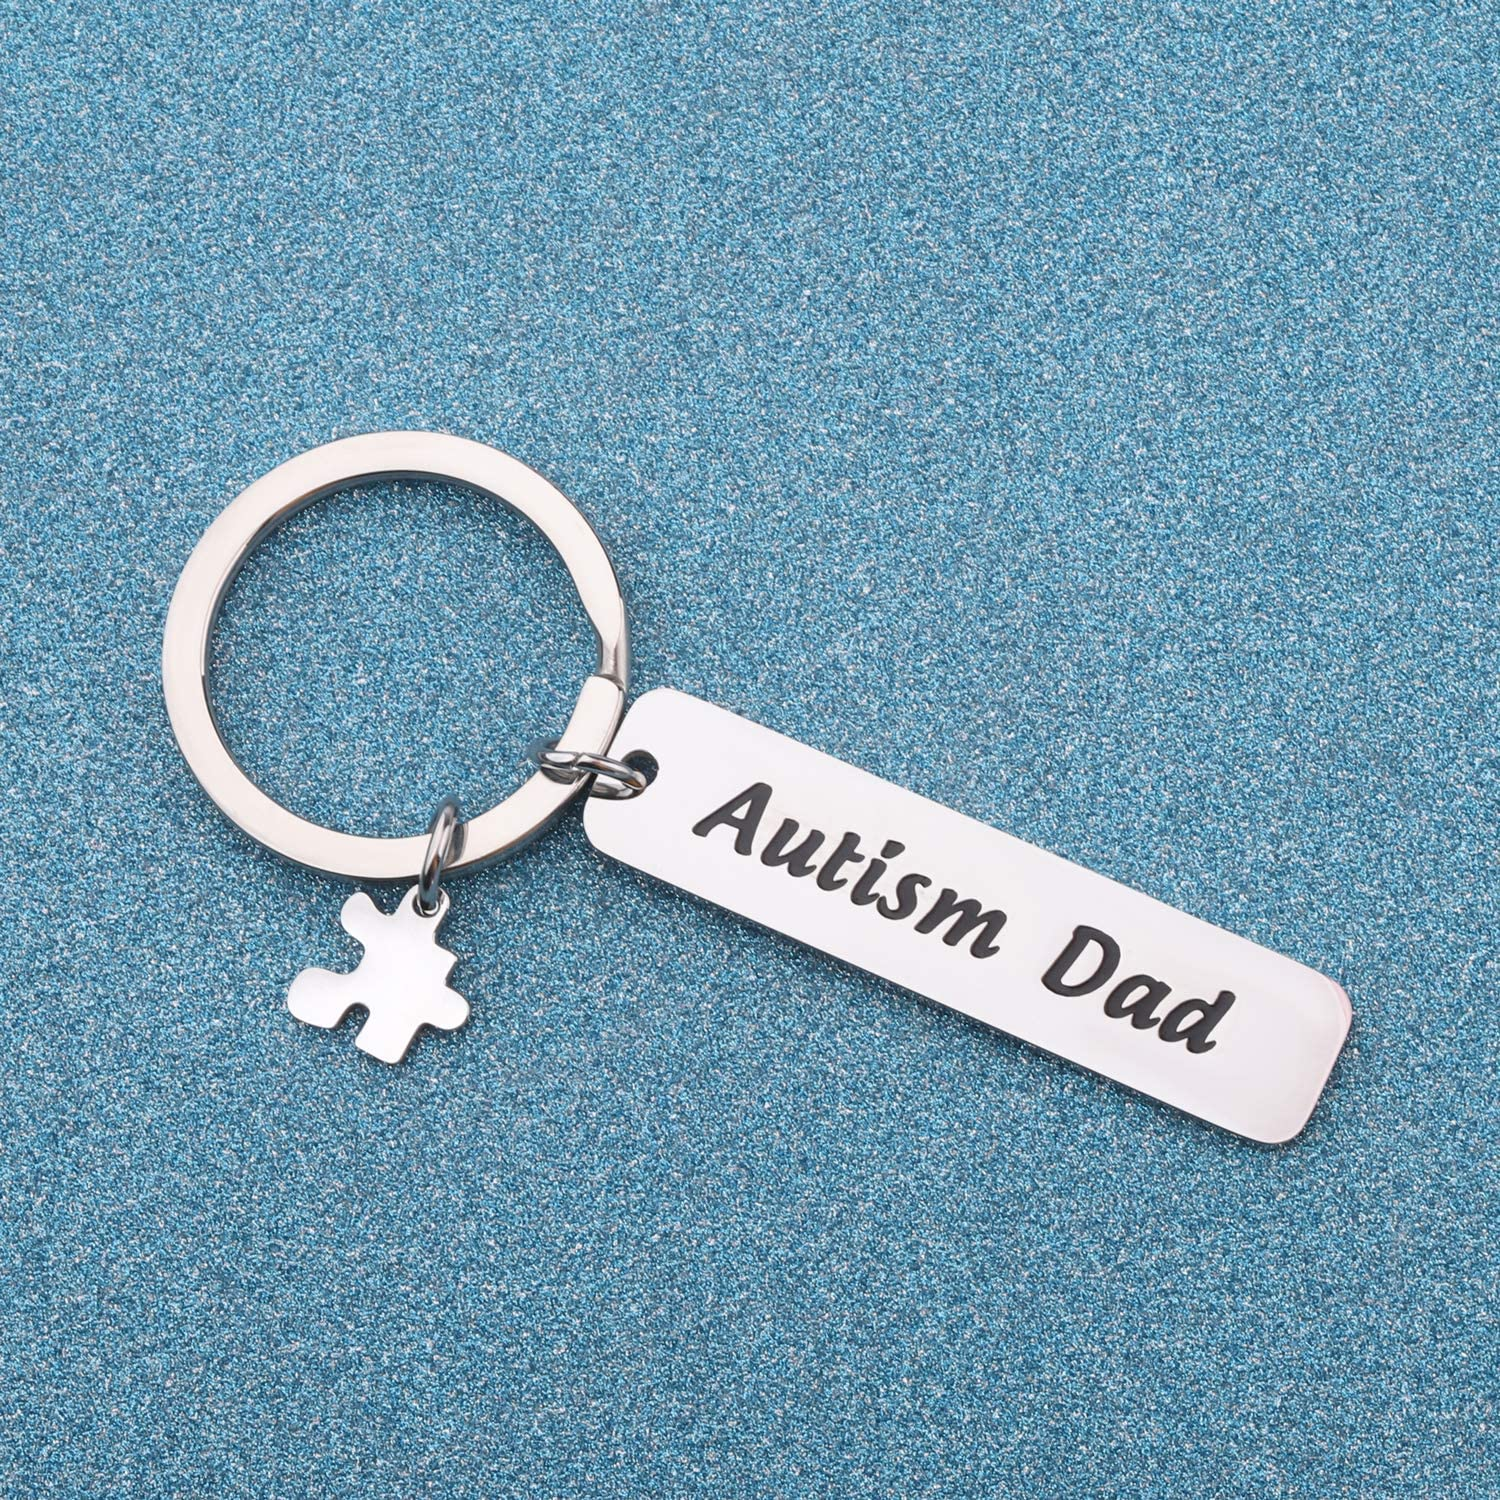 LQRI Autism Dad Keychain Proud Autism Dad Gift Autism Puzzle Piece Charm Autism Awareness Keychain Autistic Support Autism Gifts for Dad